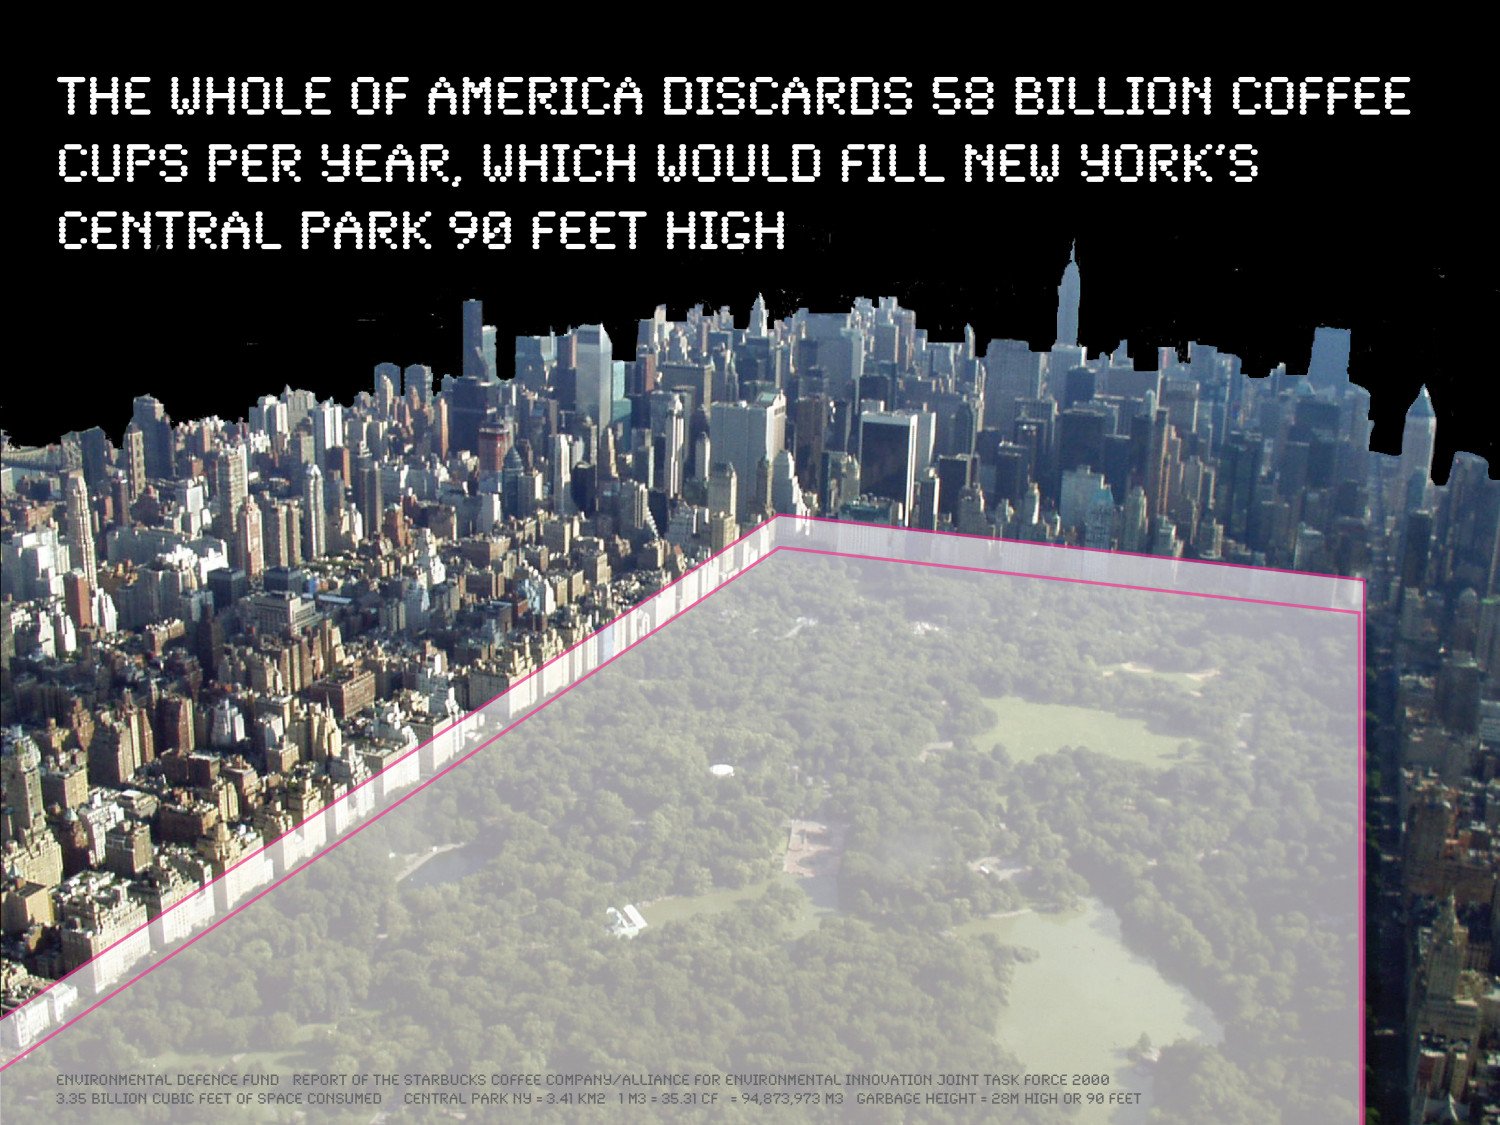 Americans discard 58 billion coffee cups per year, enough to fill New York's Central Park 90 feet high  Infographic